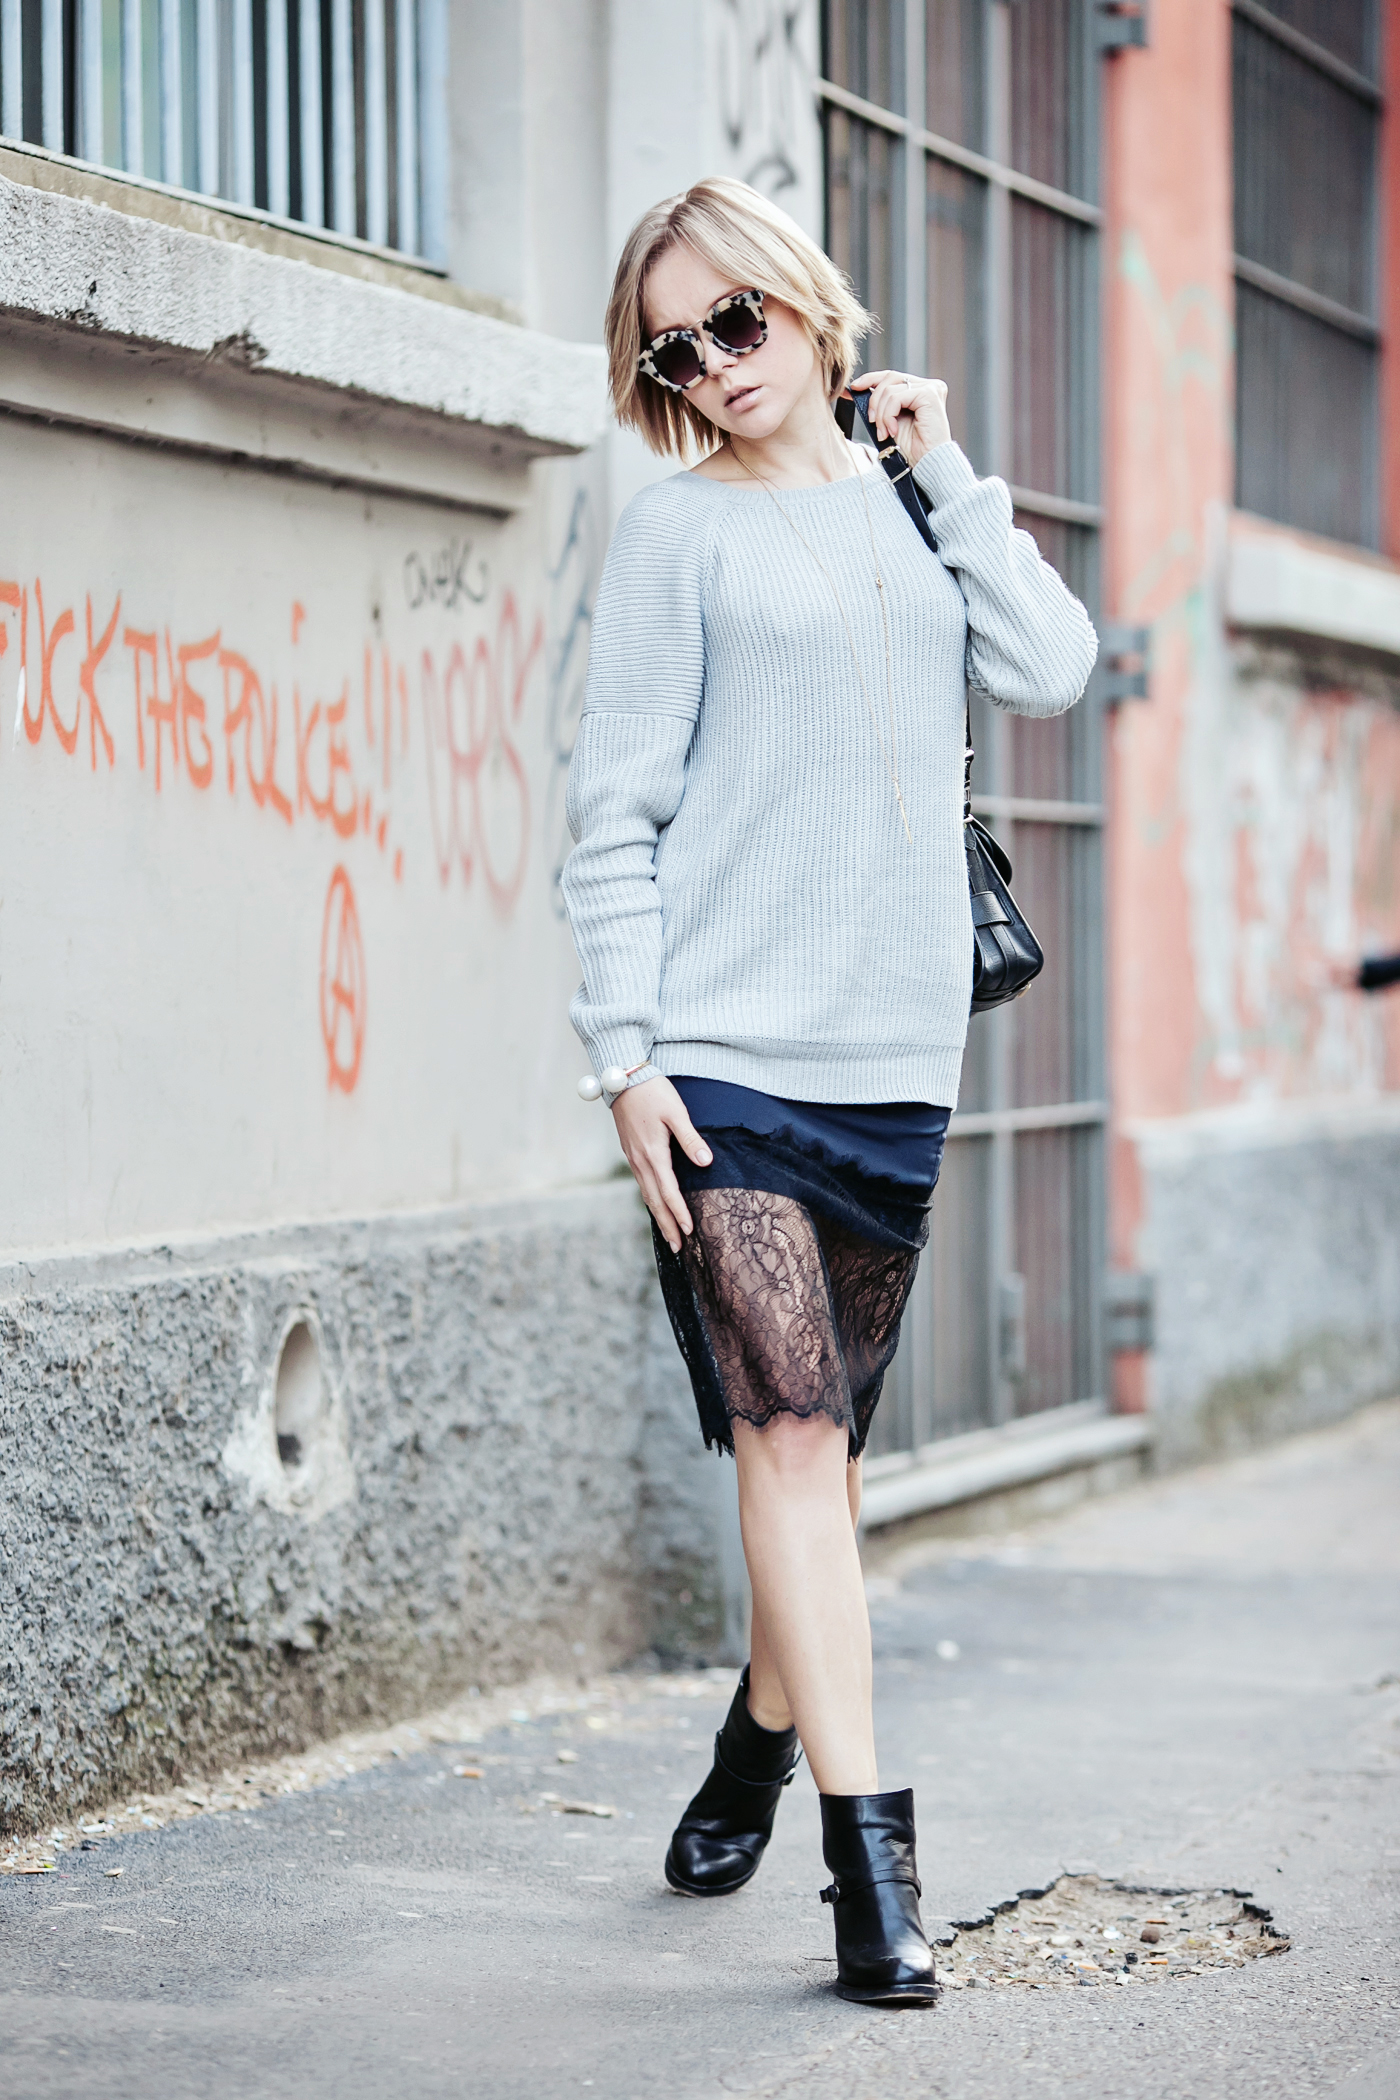 darya kamalova russian italian fashion blogger from thecablook com is wearing asos lace skirt with grey vila sweater and ps11 proenza schouler bag in milan-10 copy